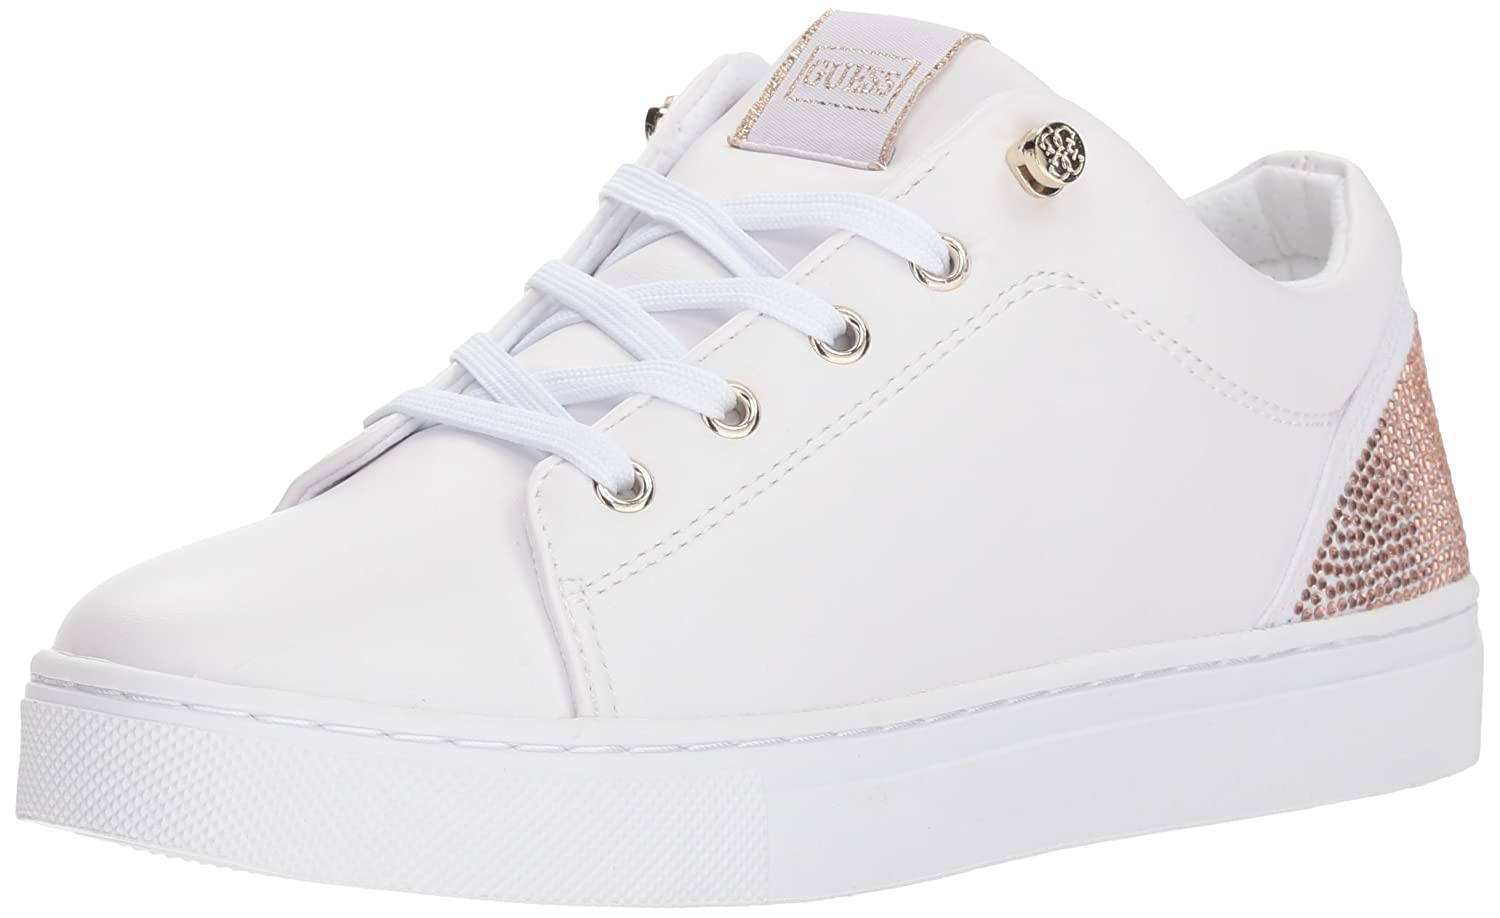 GUESS Women's Jollie Sneaker B0727Y59JH 5 B(M) US|White